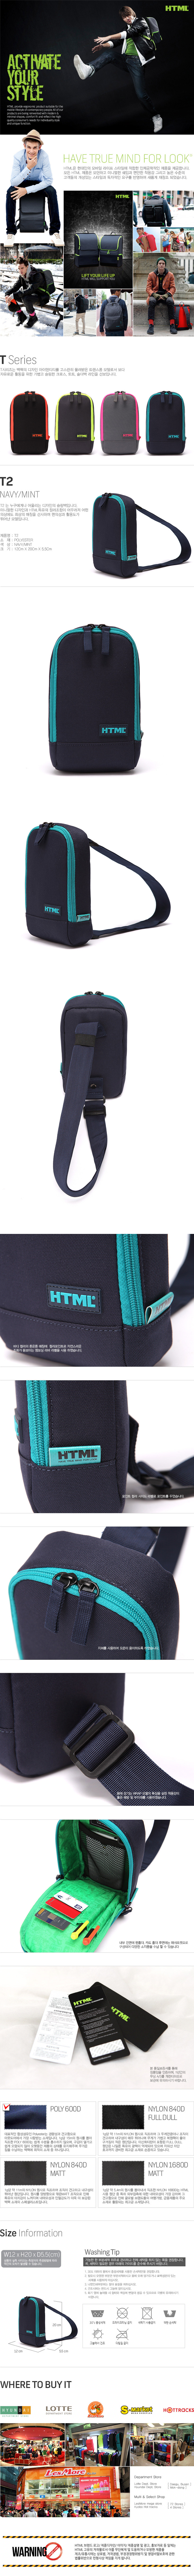 [에이치티엠엘]HTML- T2 Slingbag (NAVY/MINT)